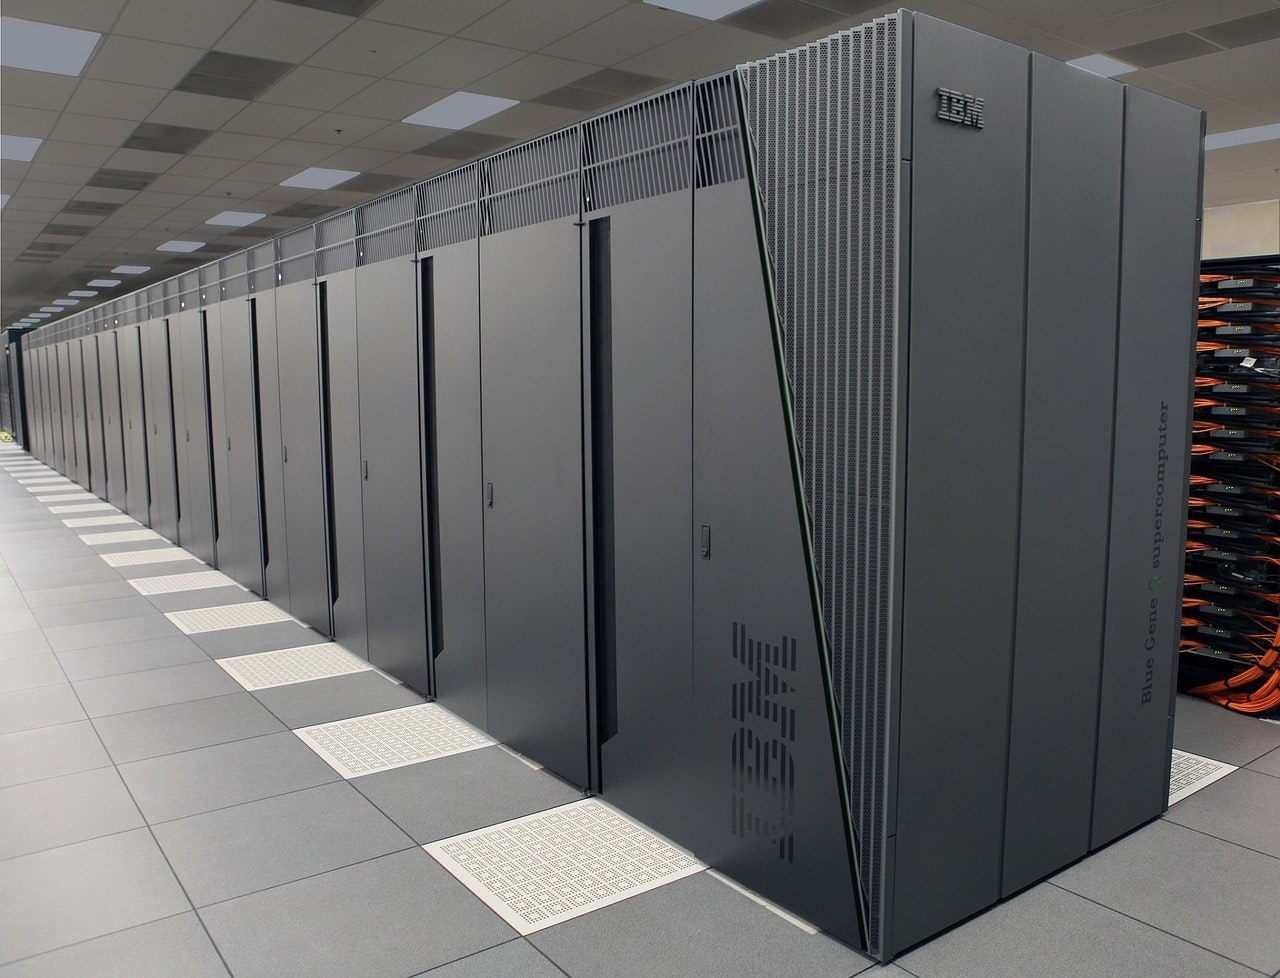 Mainframe computer, IBM mainframe, IBM Z, Computer, , IBM, Cloud computing, Information technology, Data center, IBM Storage, mainframe 2017, technology, server, electronic device, floor, locker